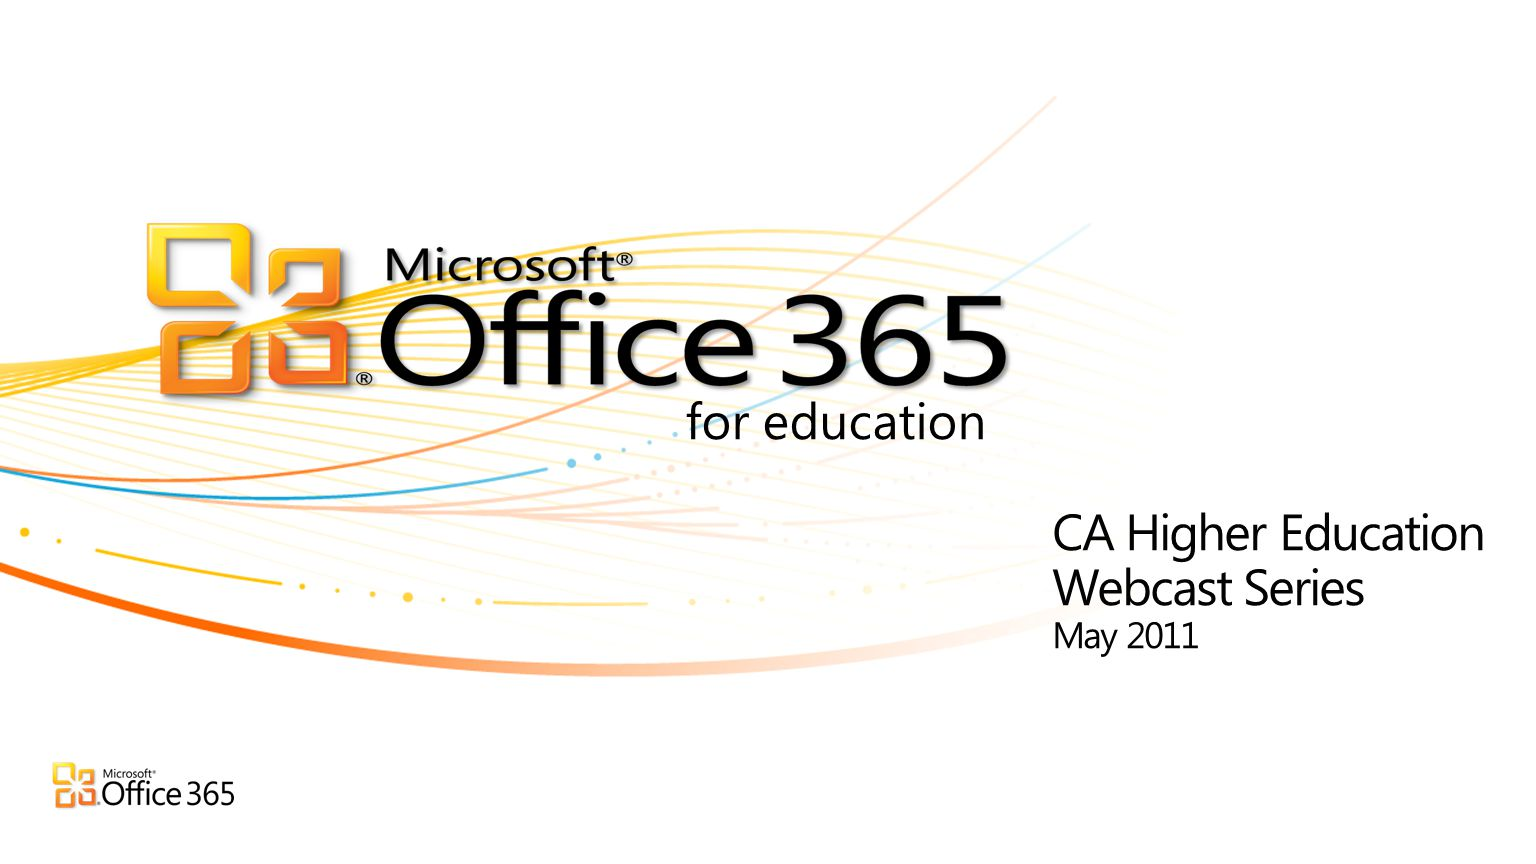 | Copyright© 2010 Microsoft Corporation Office 365 for education BRINGING TOGETHER CLOUD VERSIONS OF OUR MOST TRUSTED COMMUNICATIONS AND COLLABORATION PRODUCTS WITH THE LATEST VERSION OF OUR DESKTOP SUITE FOR EDUCATIONAL INSTITUTIONS OF ALL SIZES.